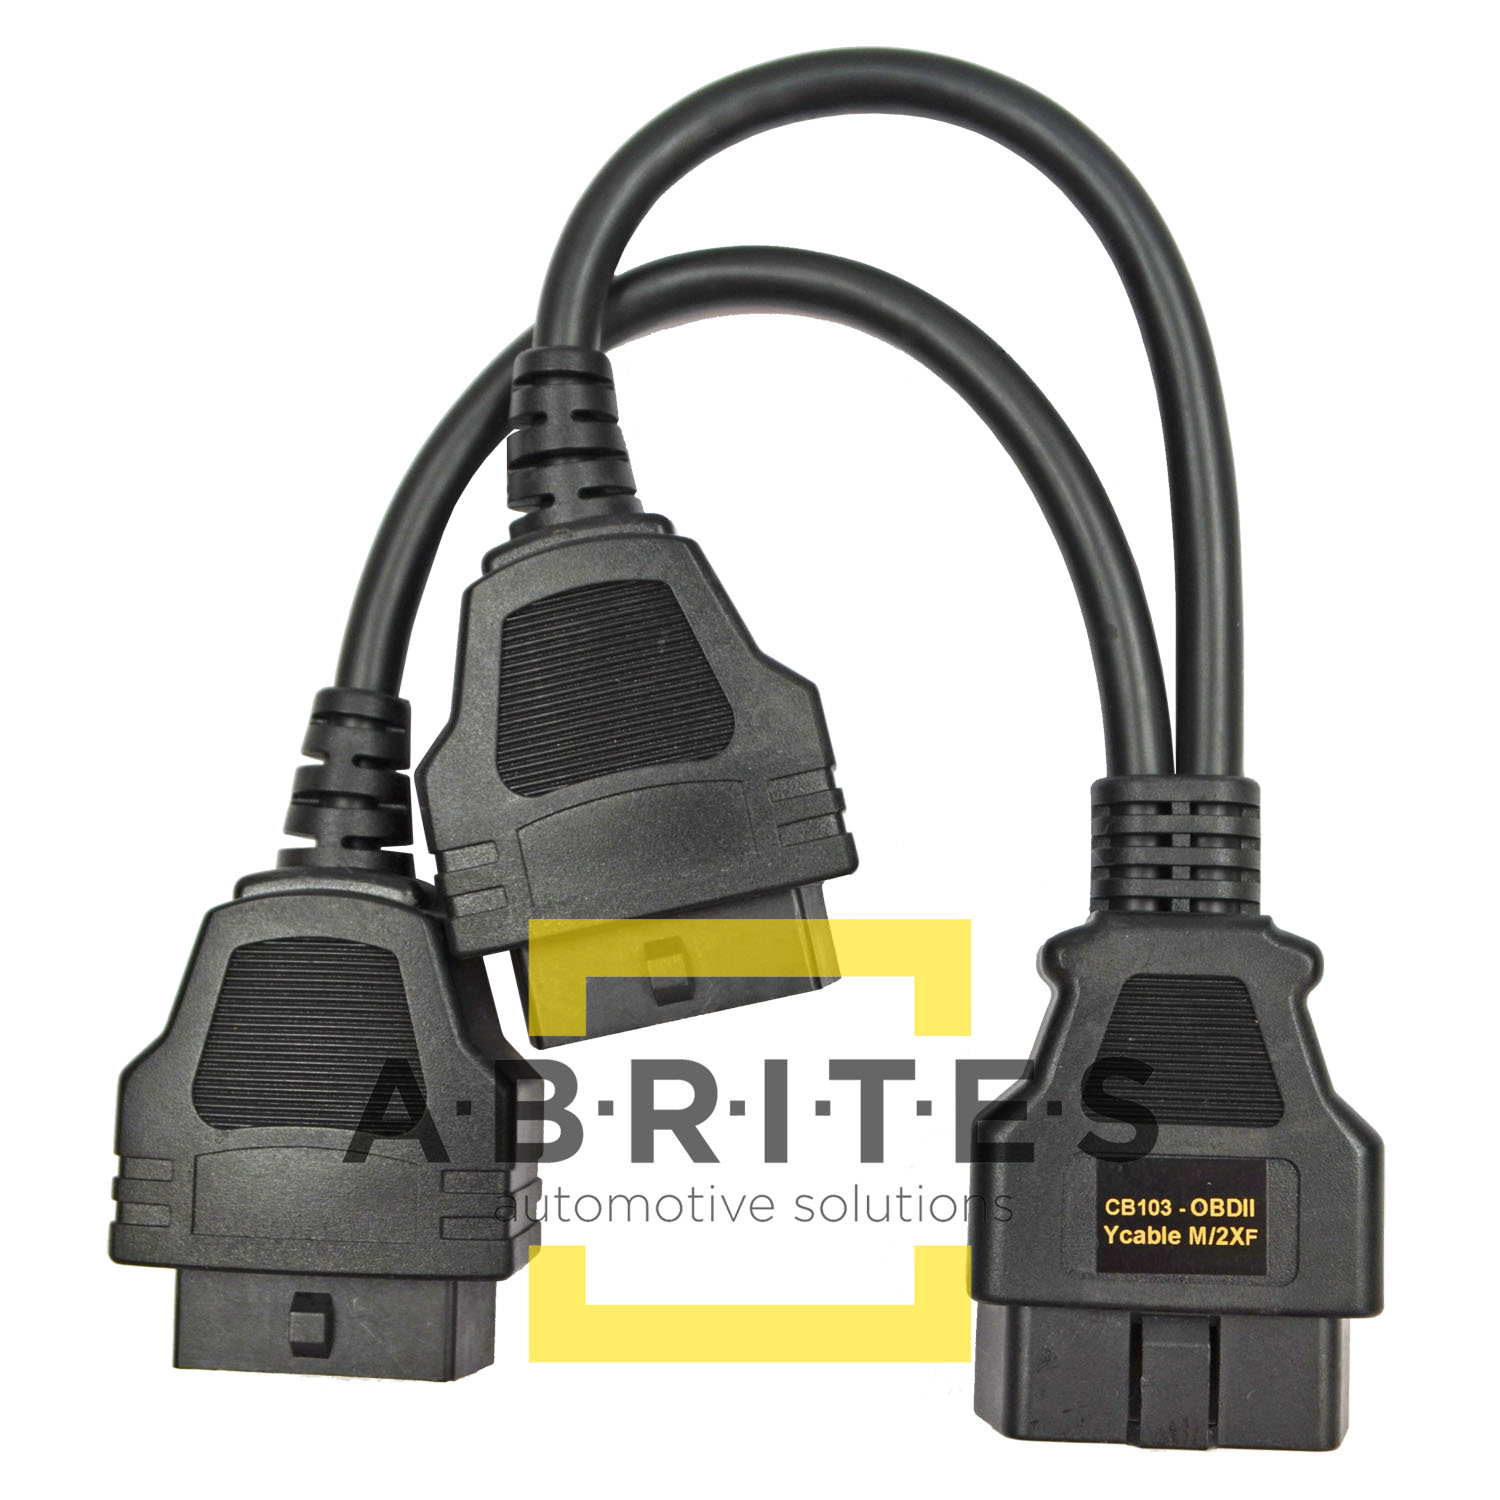 OBDII Y cable M/2xF<br/>